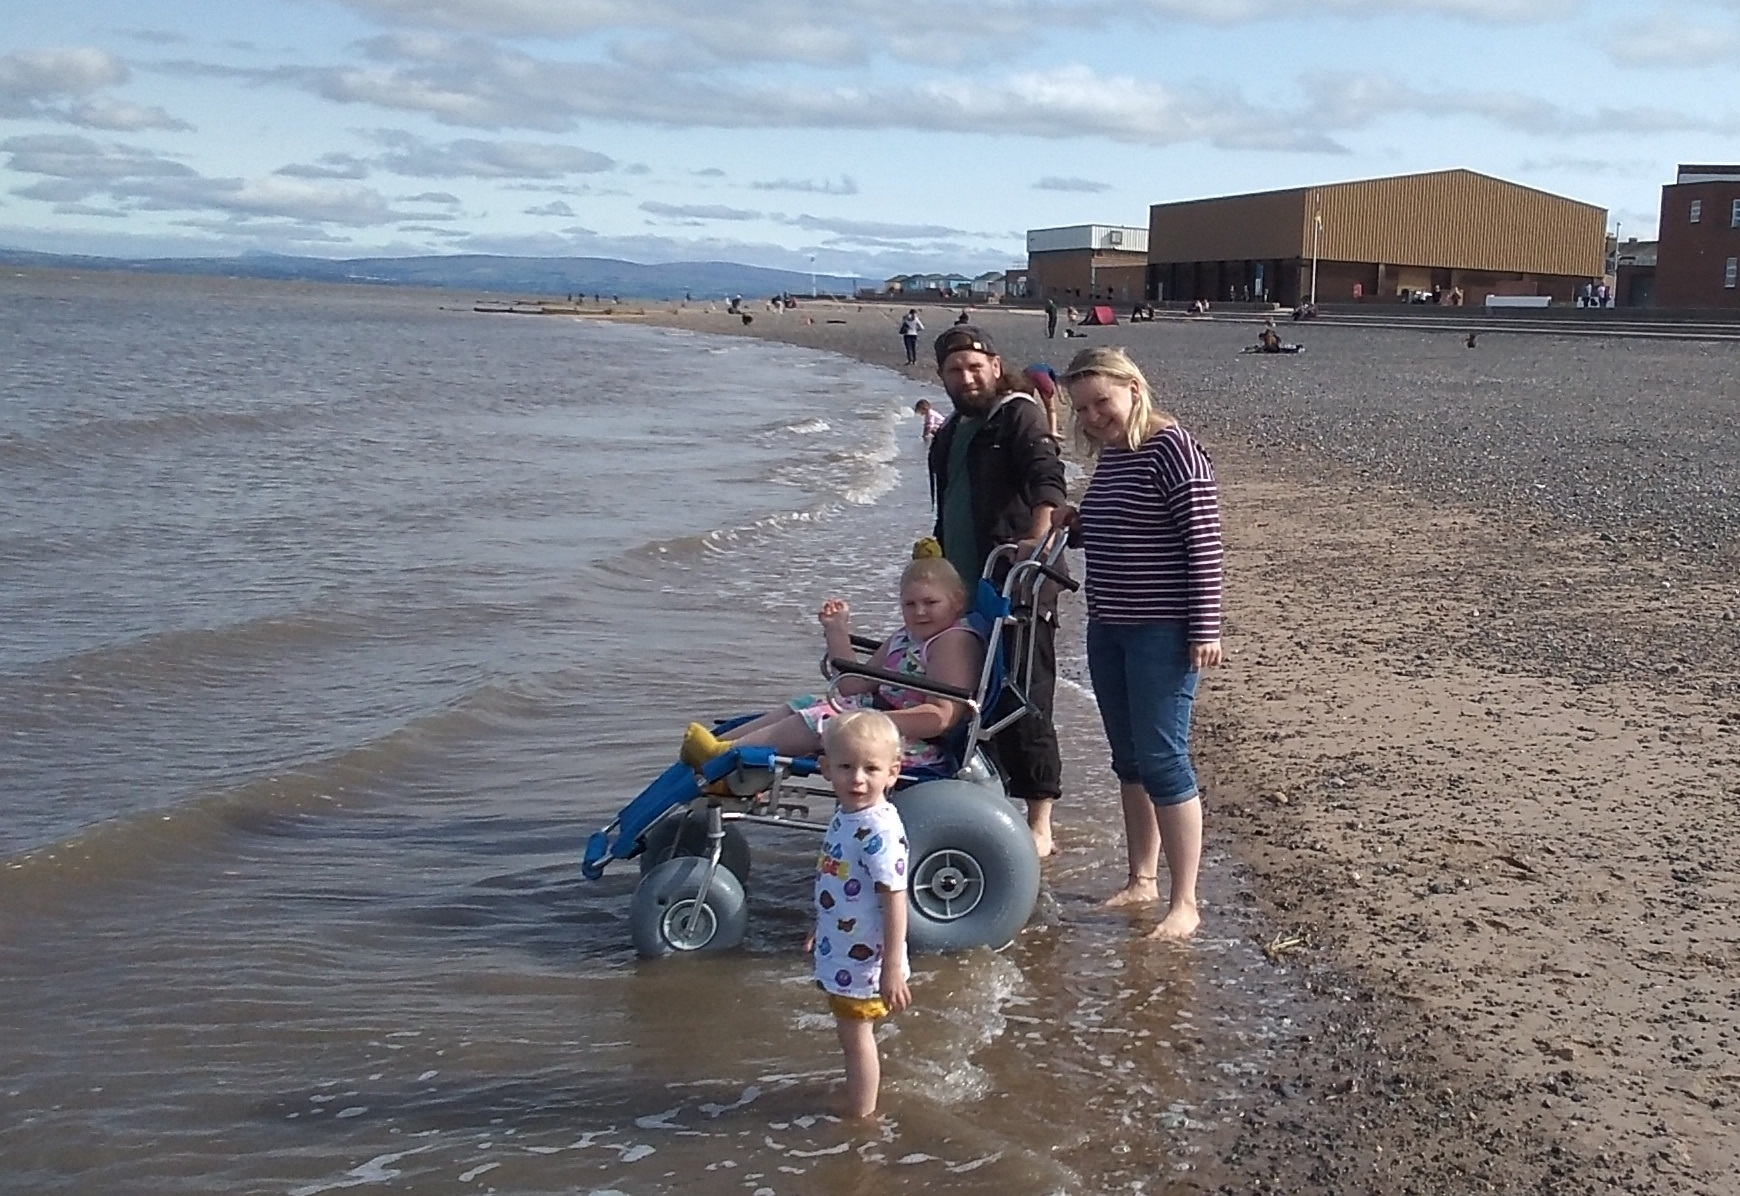 Indi and family getting their feet and wheels wet!